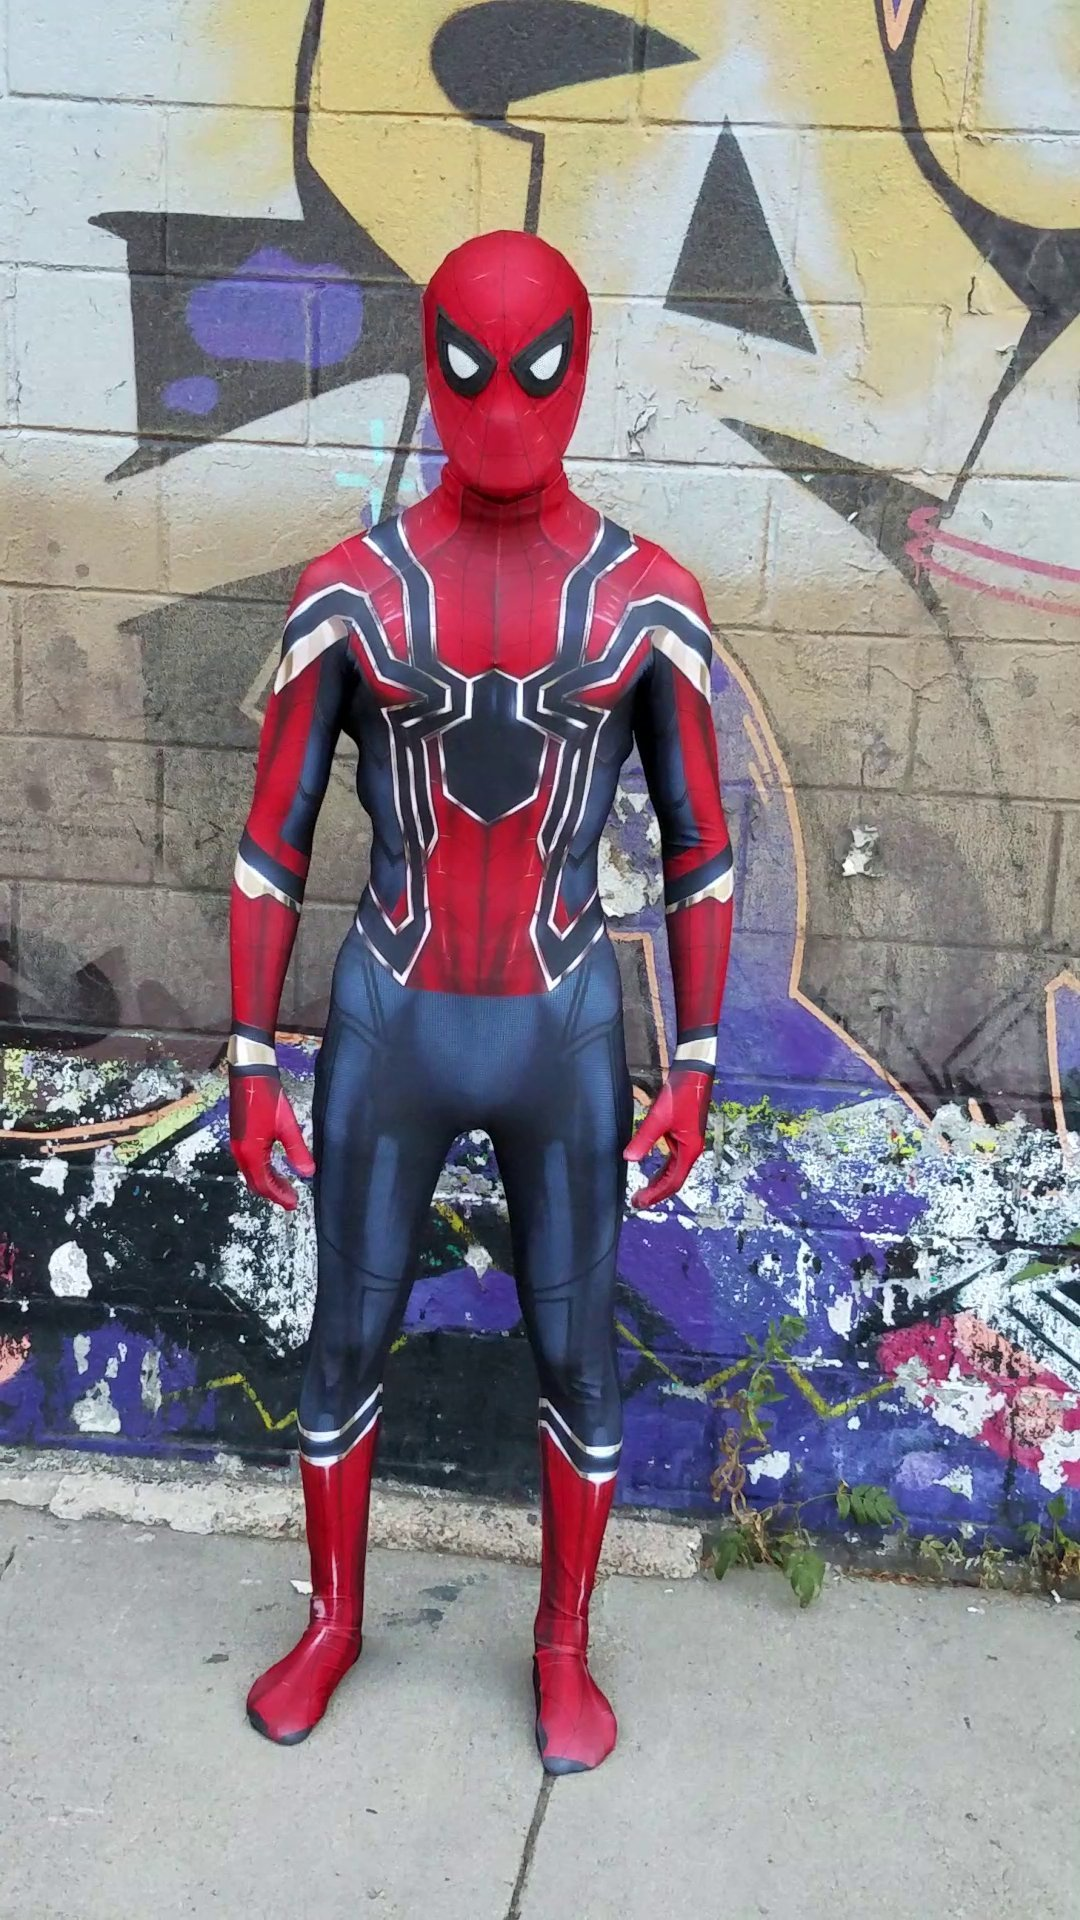 Iron Spider Spider-Man Homecoming Suit by Aesthetic Cosplay w/ Mask & Lenses | Homecoming Spider-Man XS